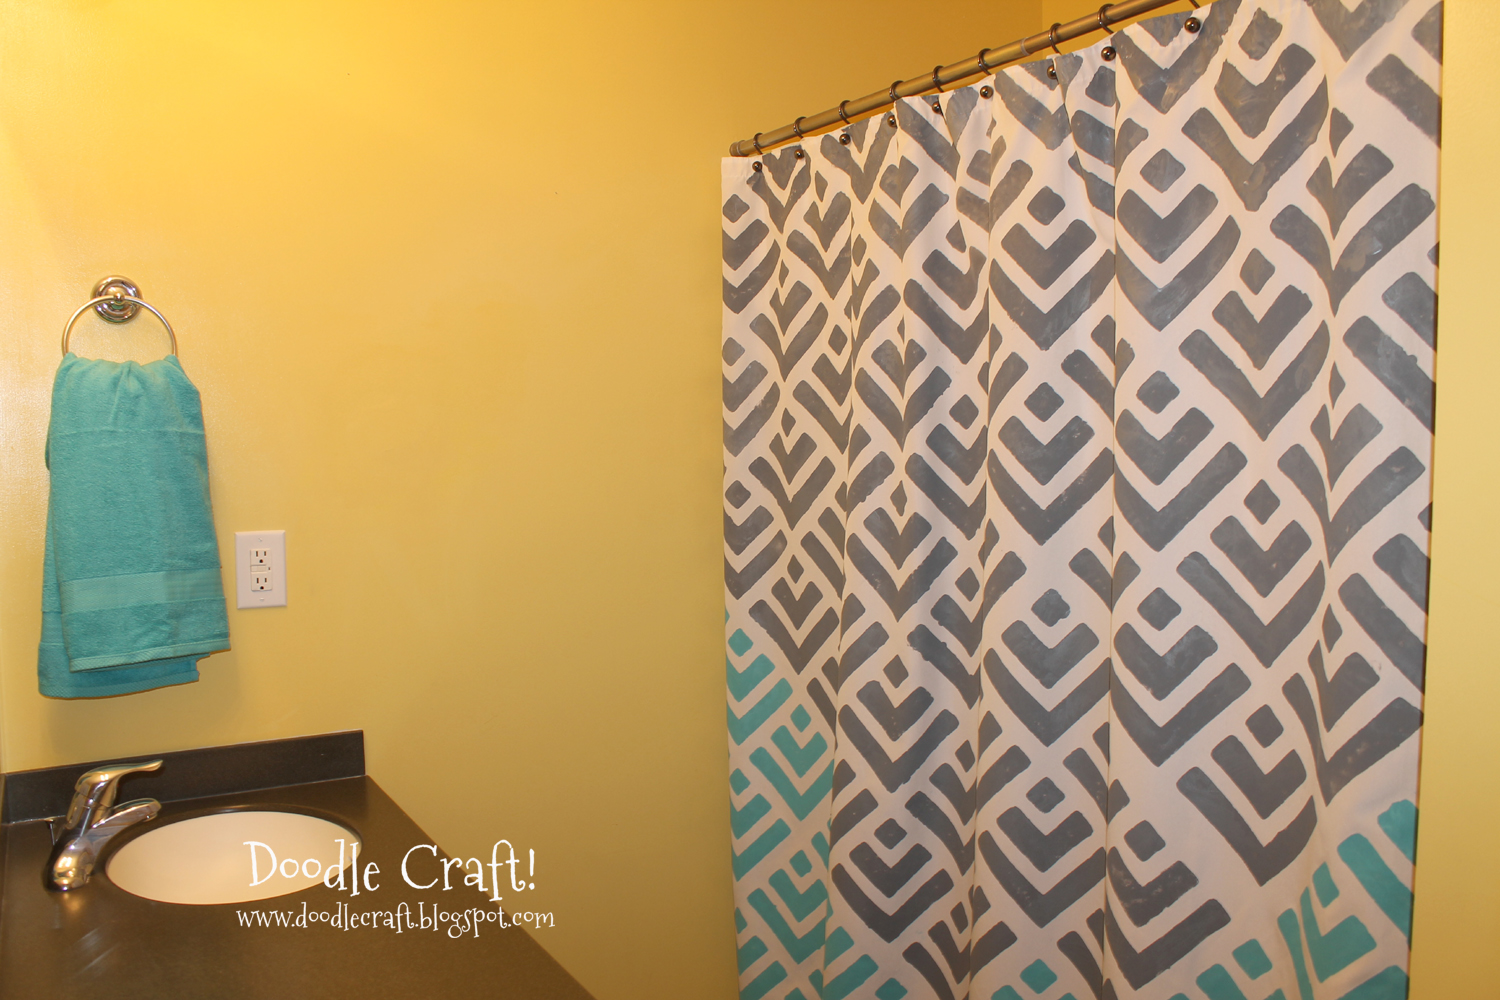 yellow and teal shower curtain. Doodlecraft Stencil a Shower Curtain with Cutting Edge Stencils And Give  away Teal Yellow Home Design Plan